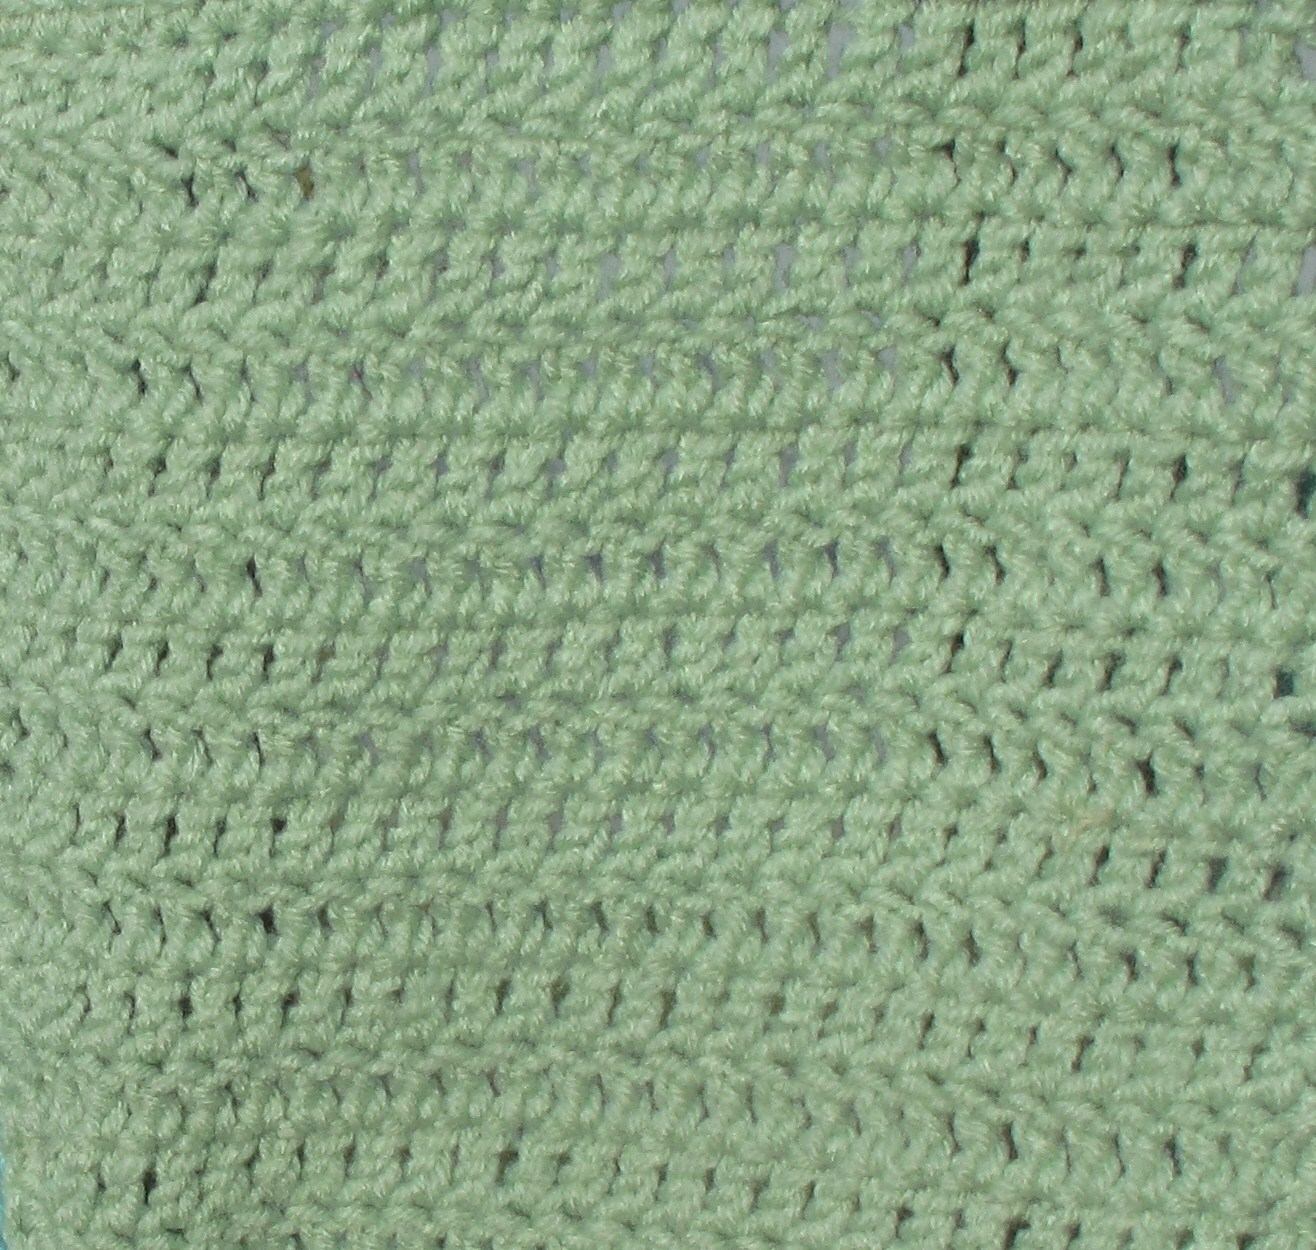 Double Crochet : ReCrochetions: Sampler Square #2 - Double Crochet (dc)